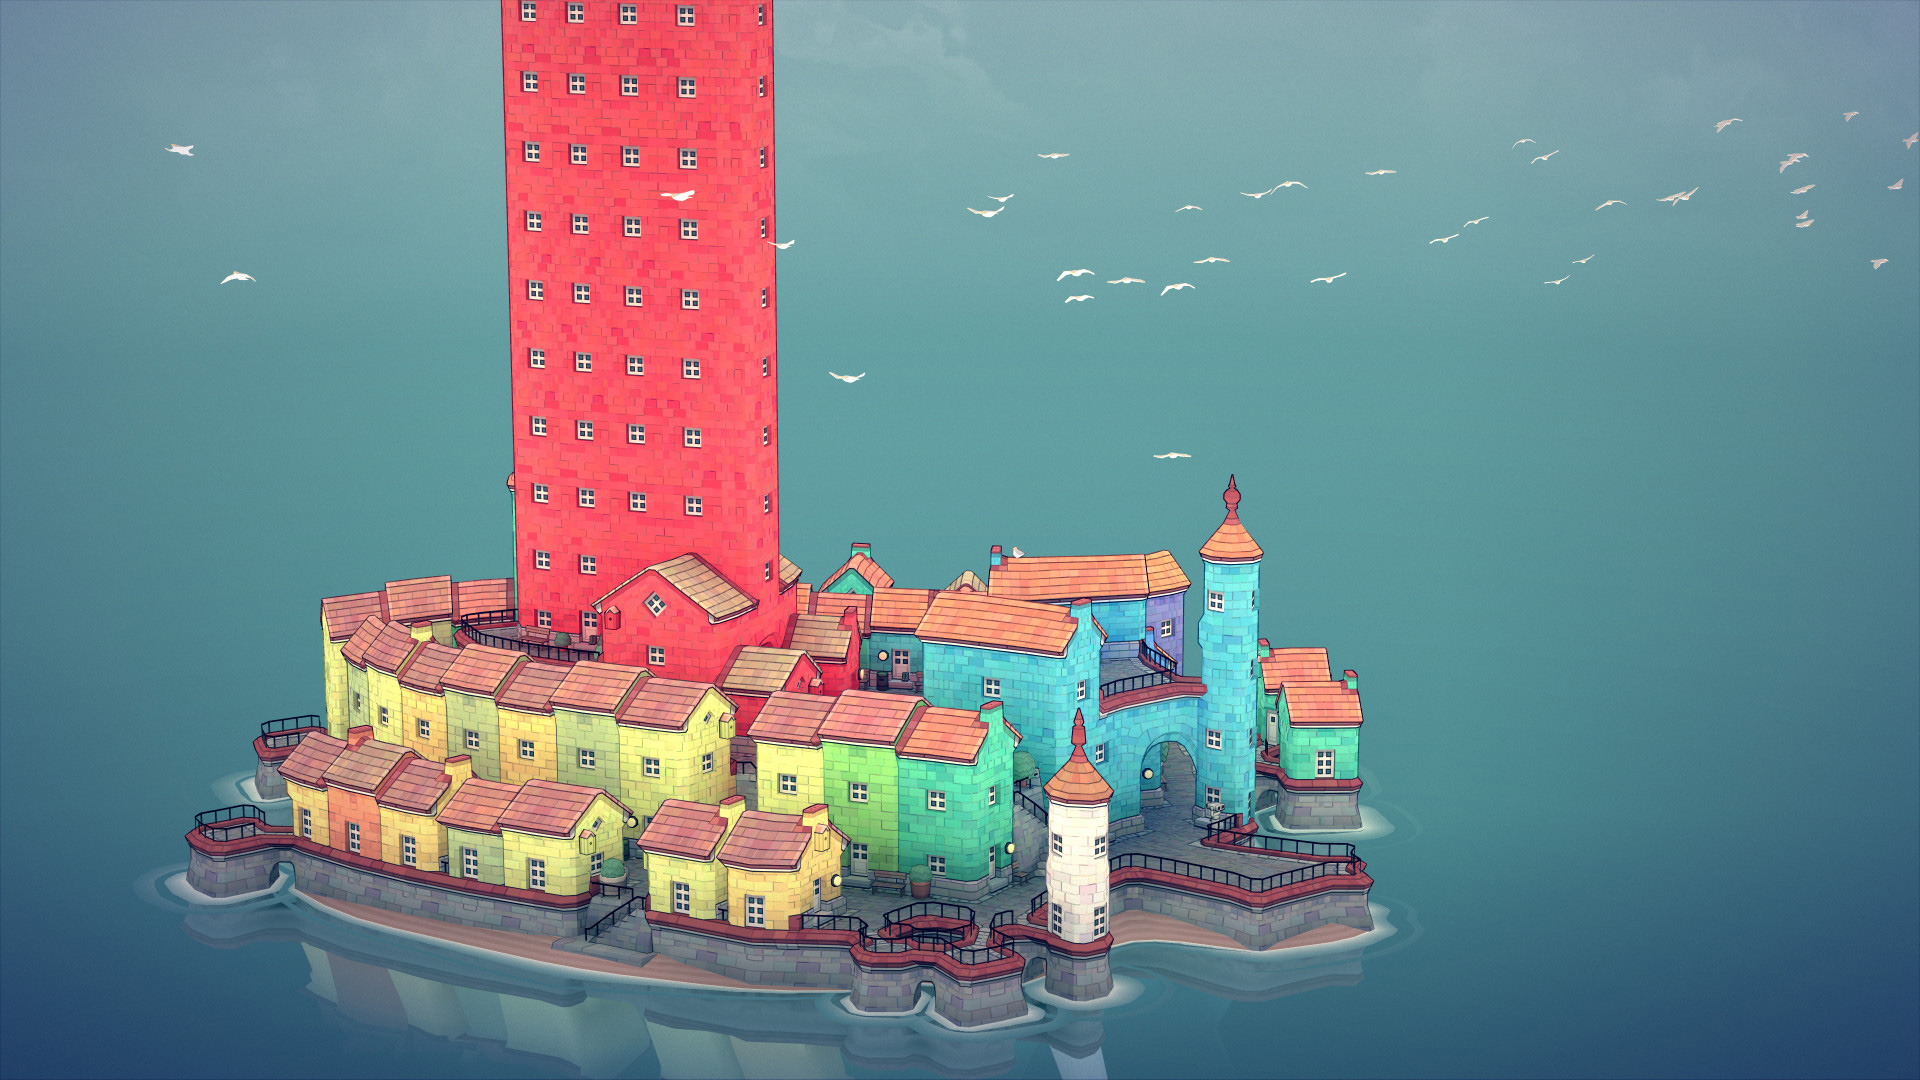 Townscaper is a stress-free game about building quaint towns screenshot